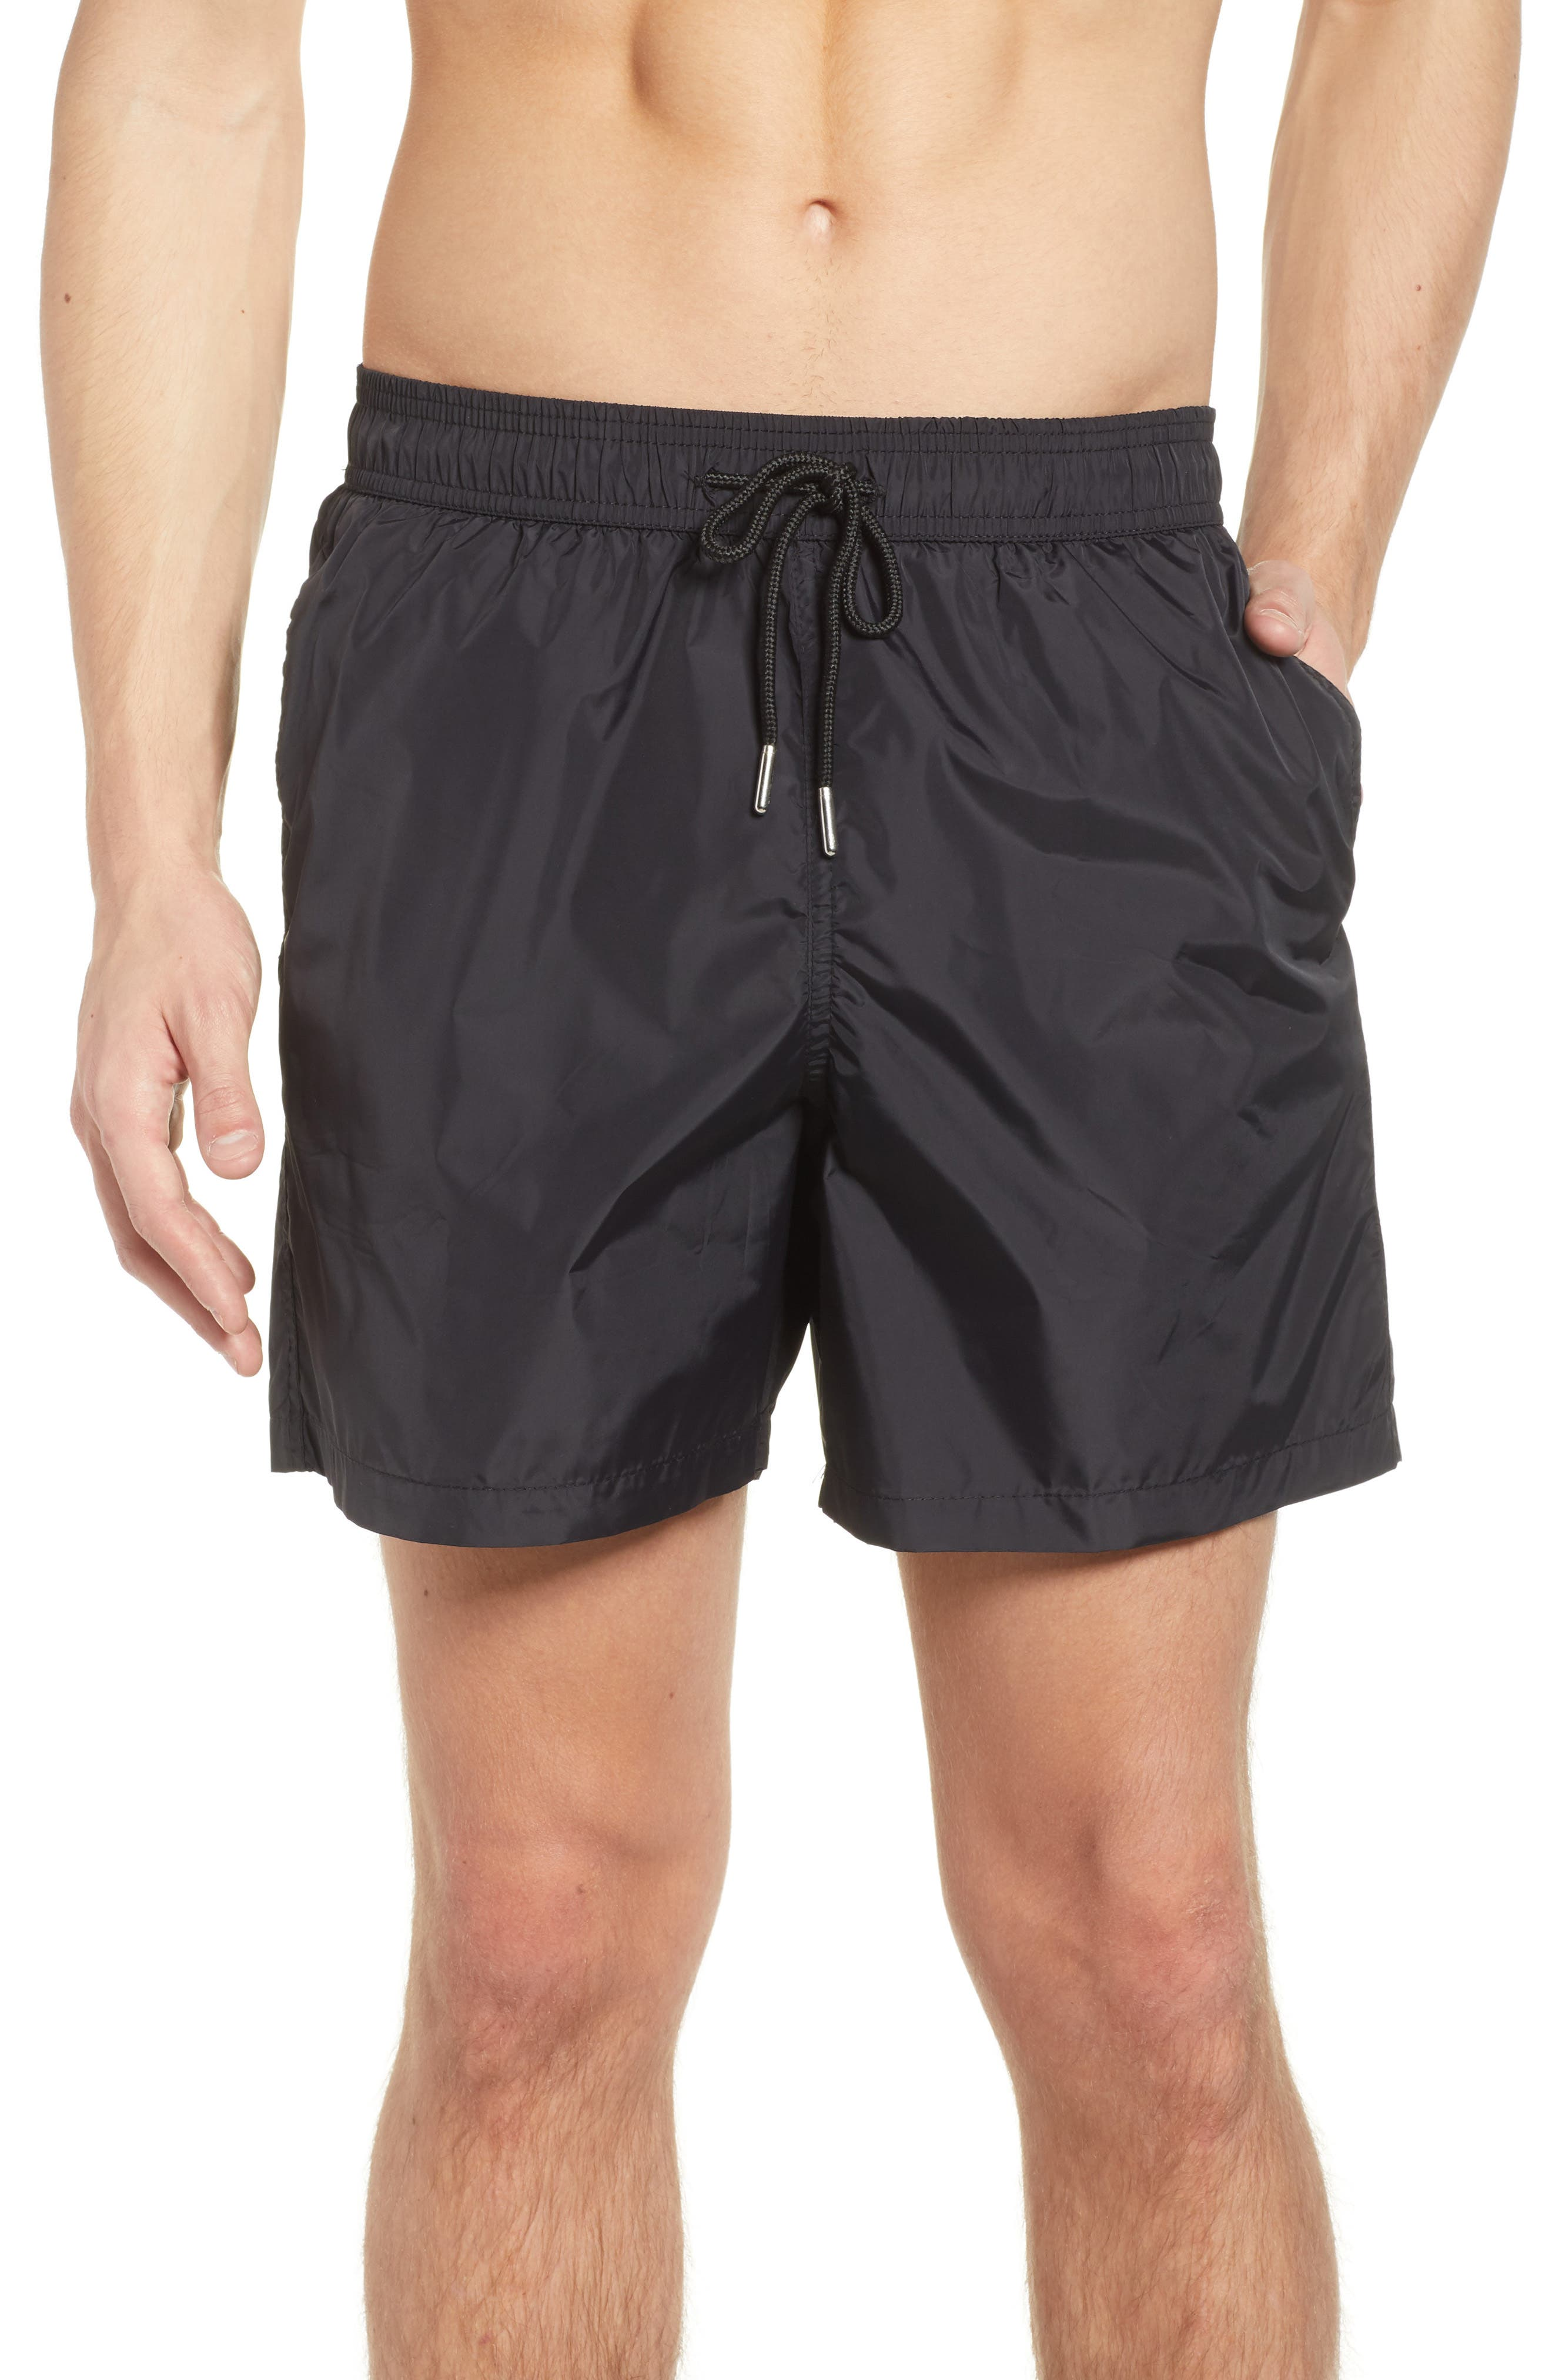 Swim Trunks,                         Main,                         color, Black /Turquoise